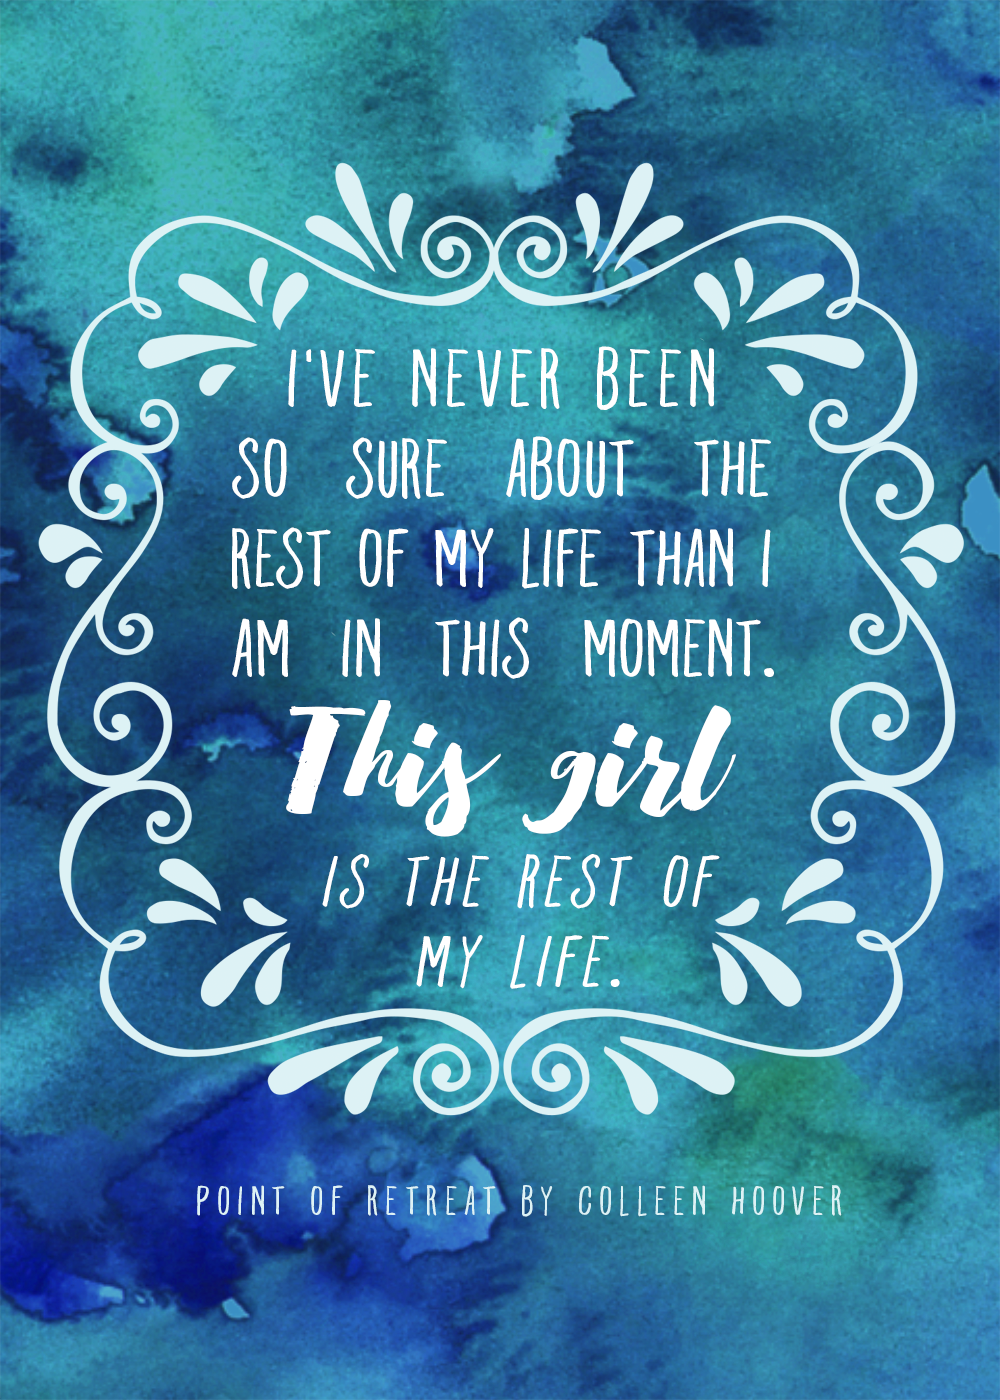 point of retreat by colleen hoover quote - this girl is the rest of my life